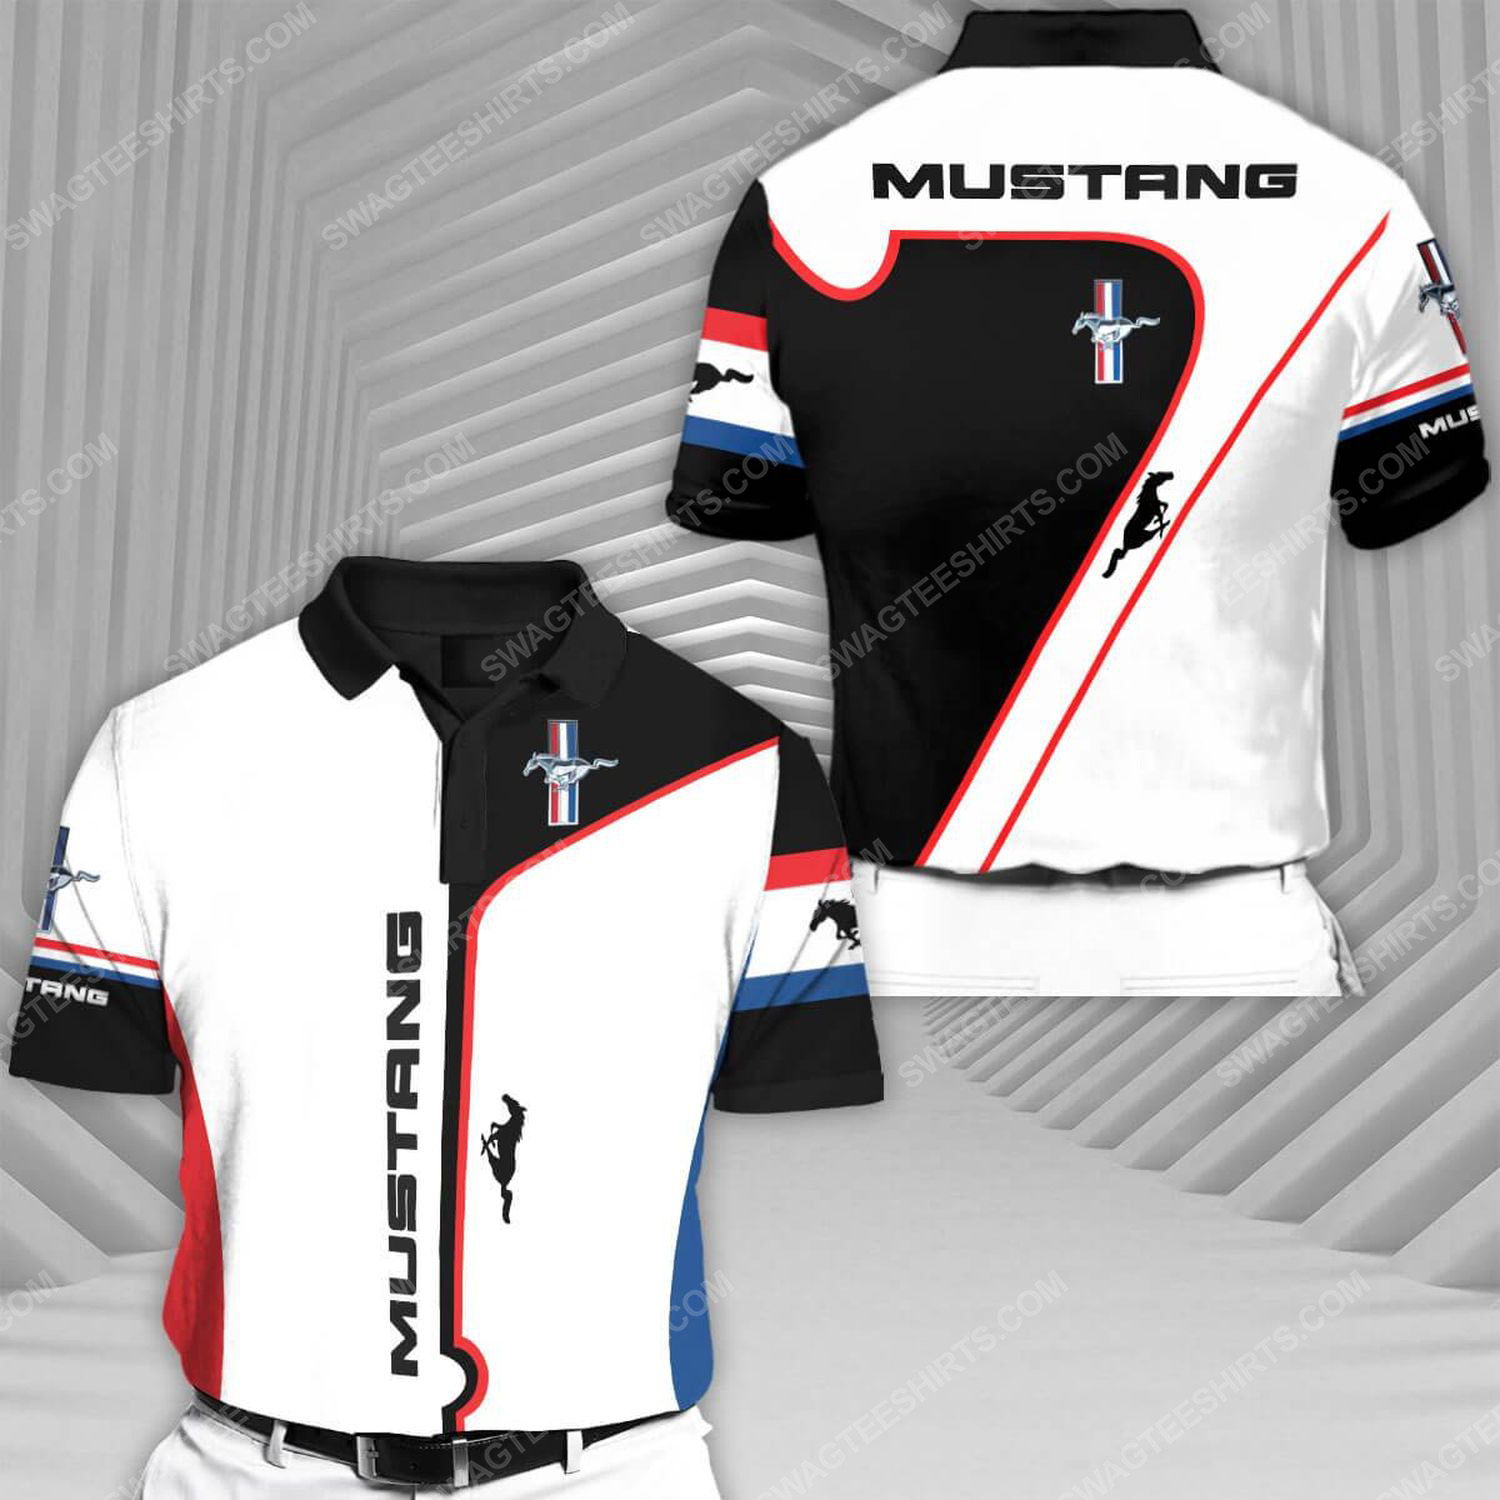 Ford mustang sports car racing all over print polo shirt 1